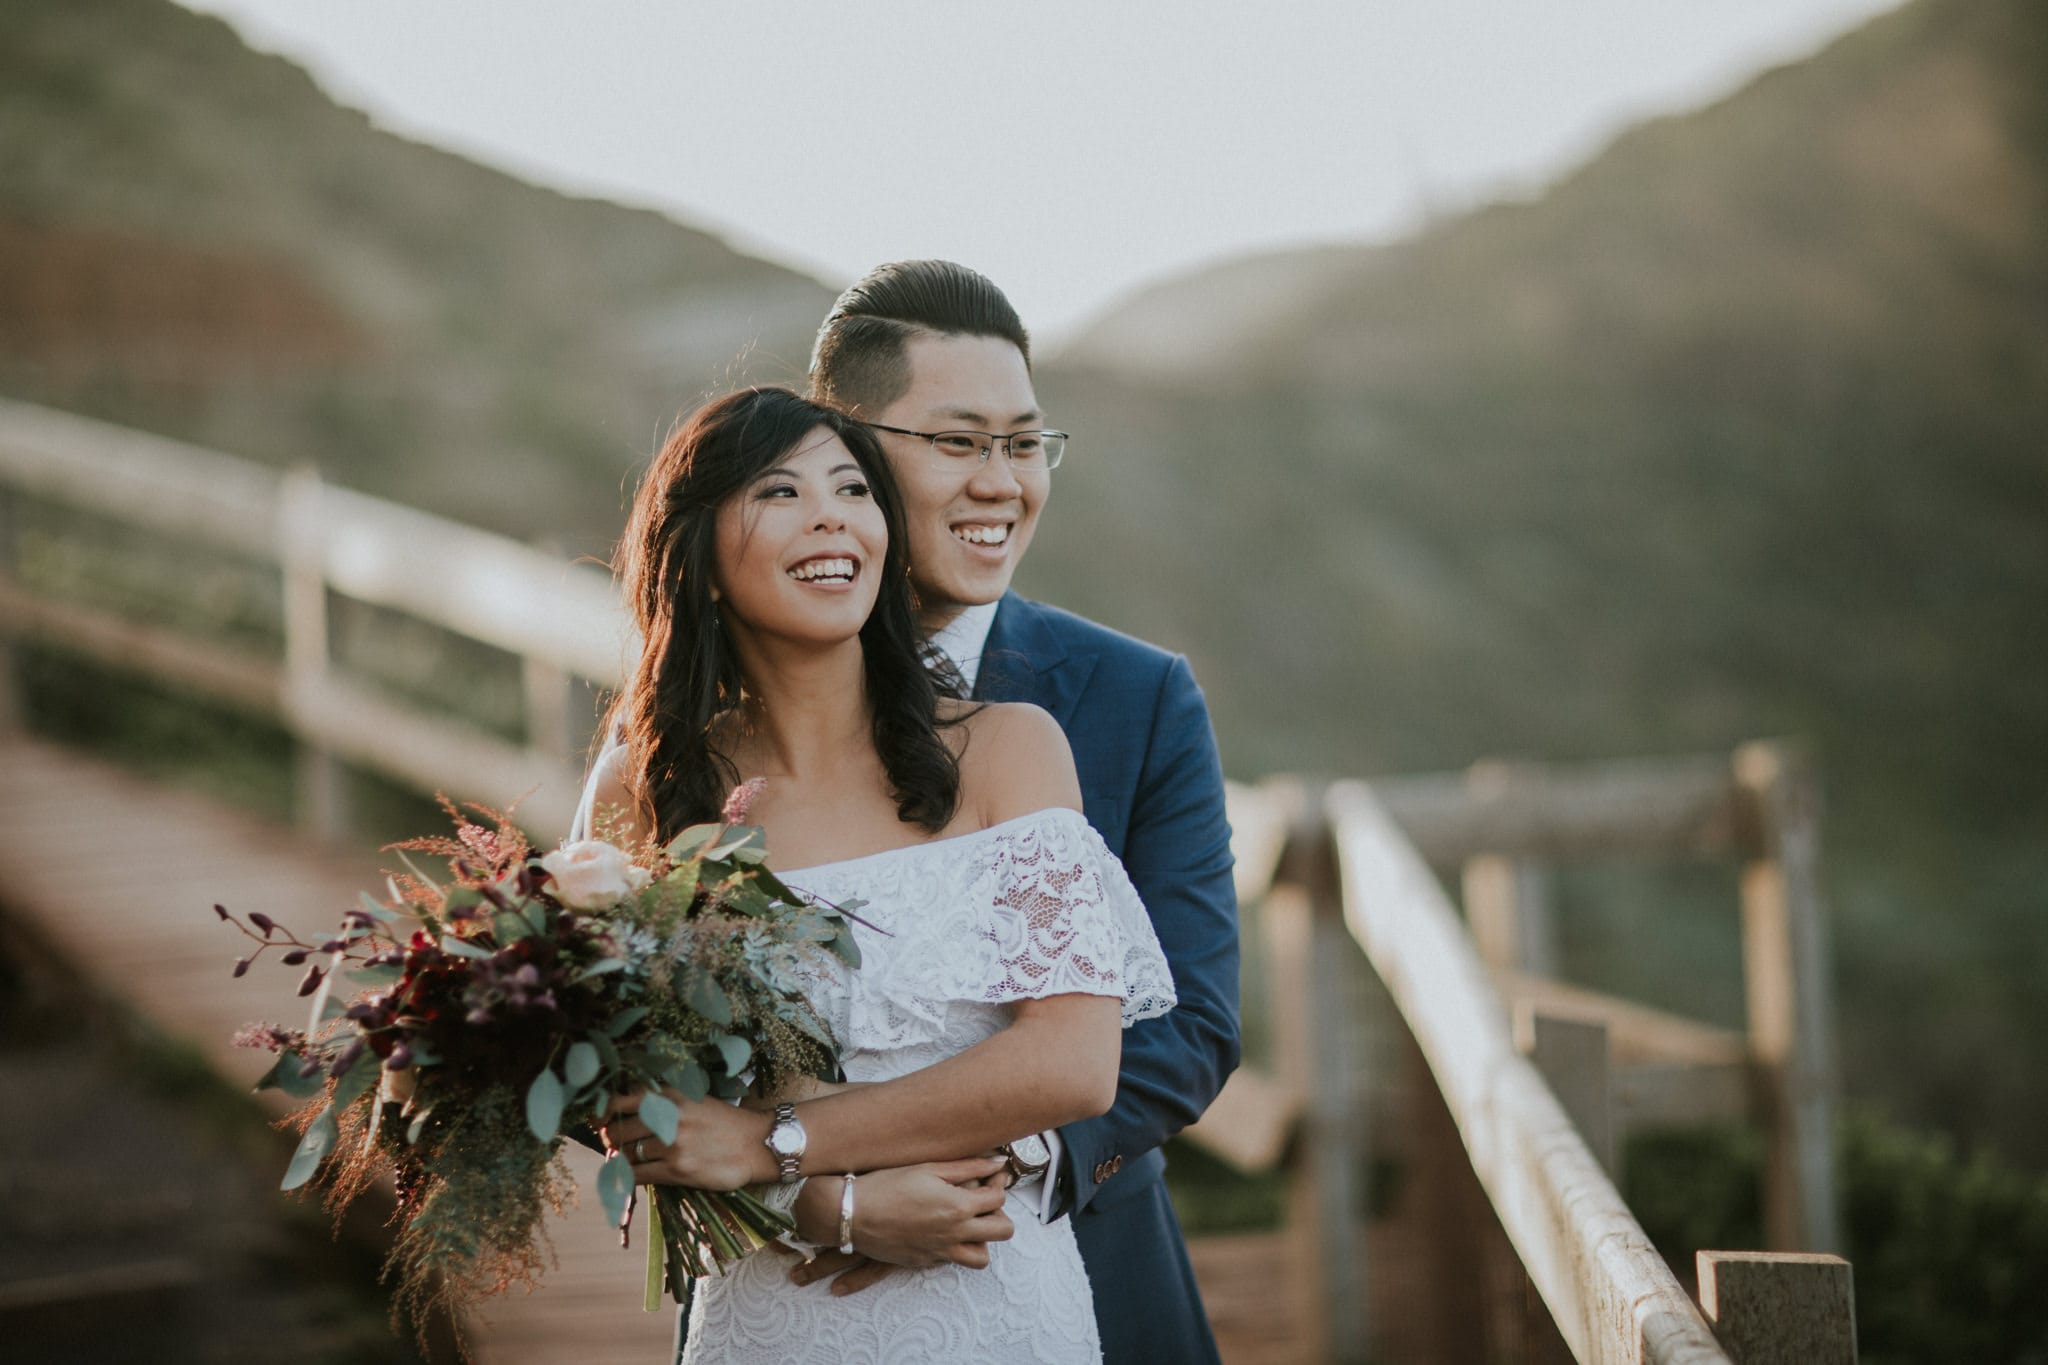 asian wedding photographer in Melbourne - couple from Singapore gets photoshoot in Melbourne - rustic native australian feel - rough nature at monrington coastal walk - portraits